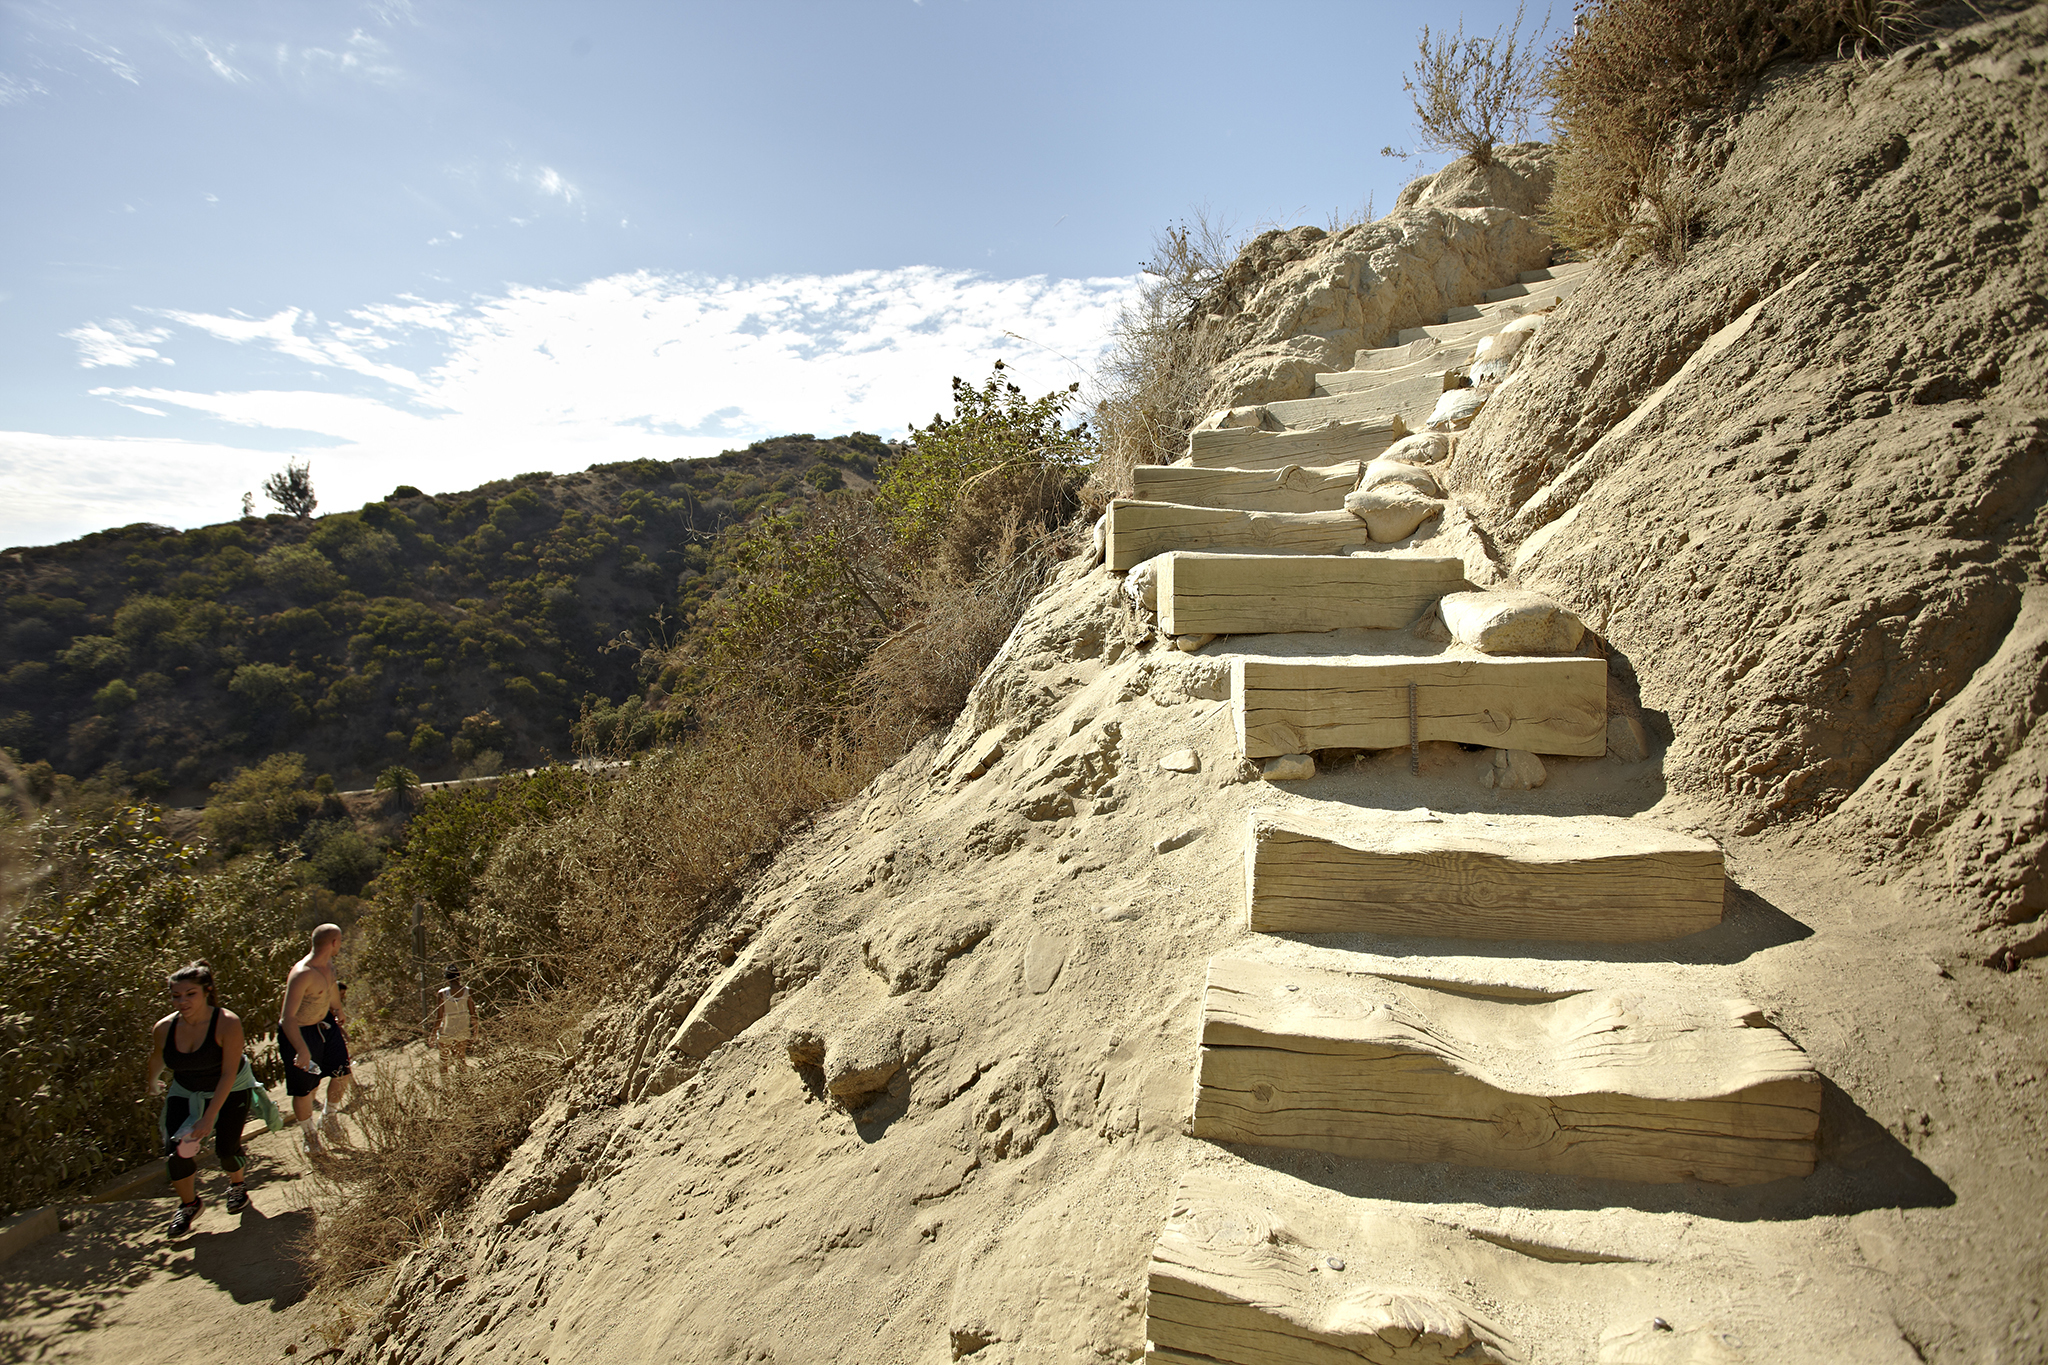 Best hikes in LA with city views